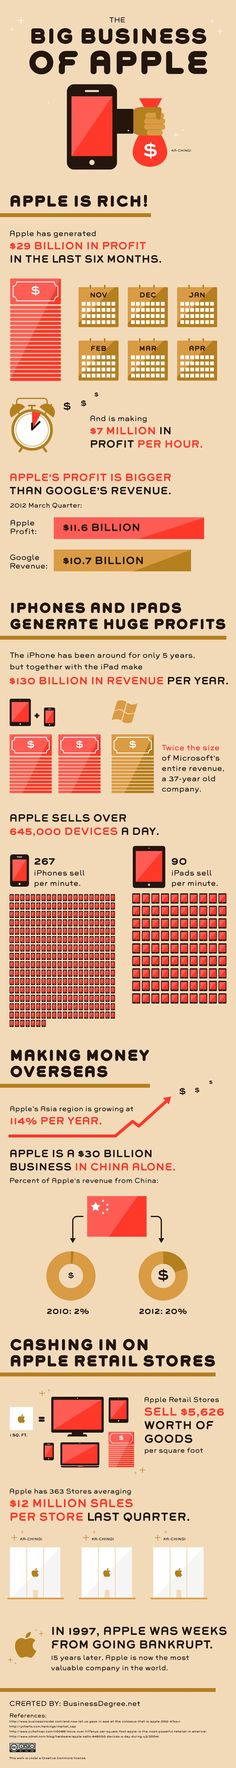 The big business of Apple